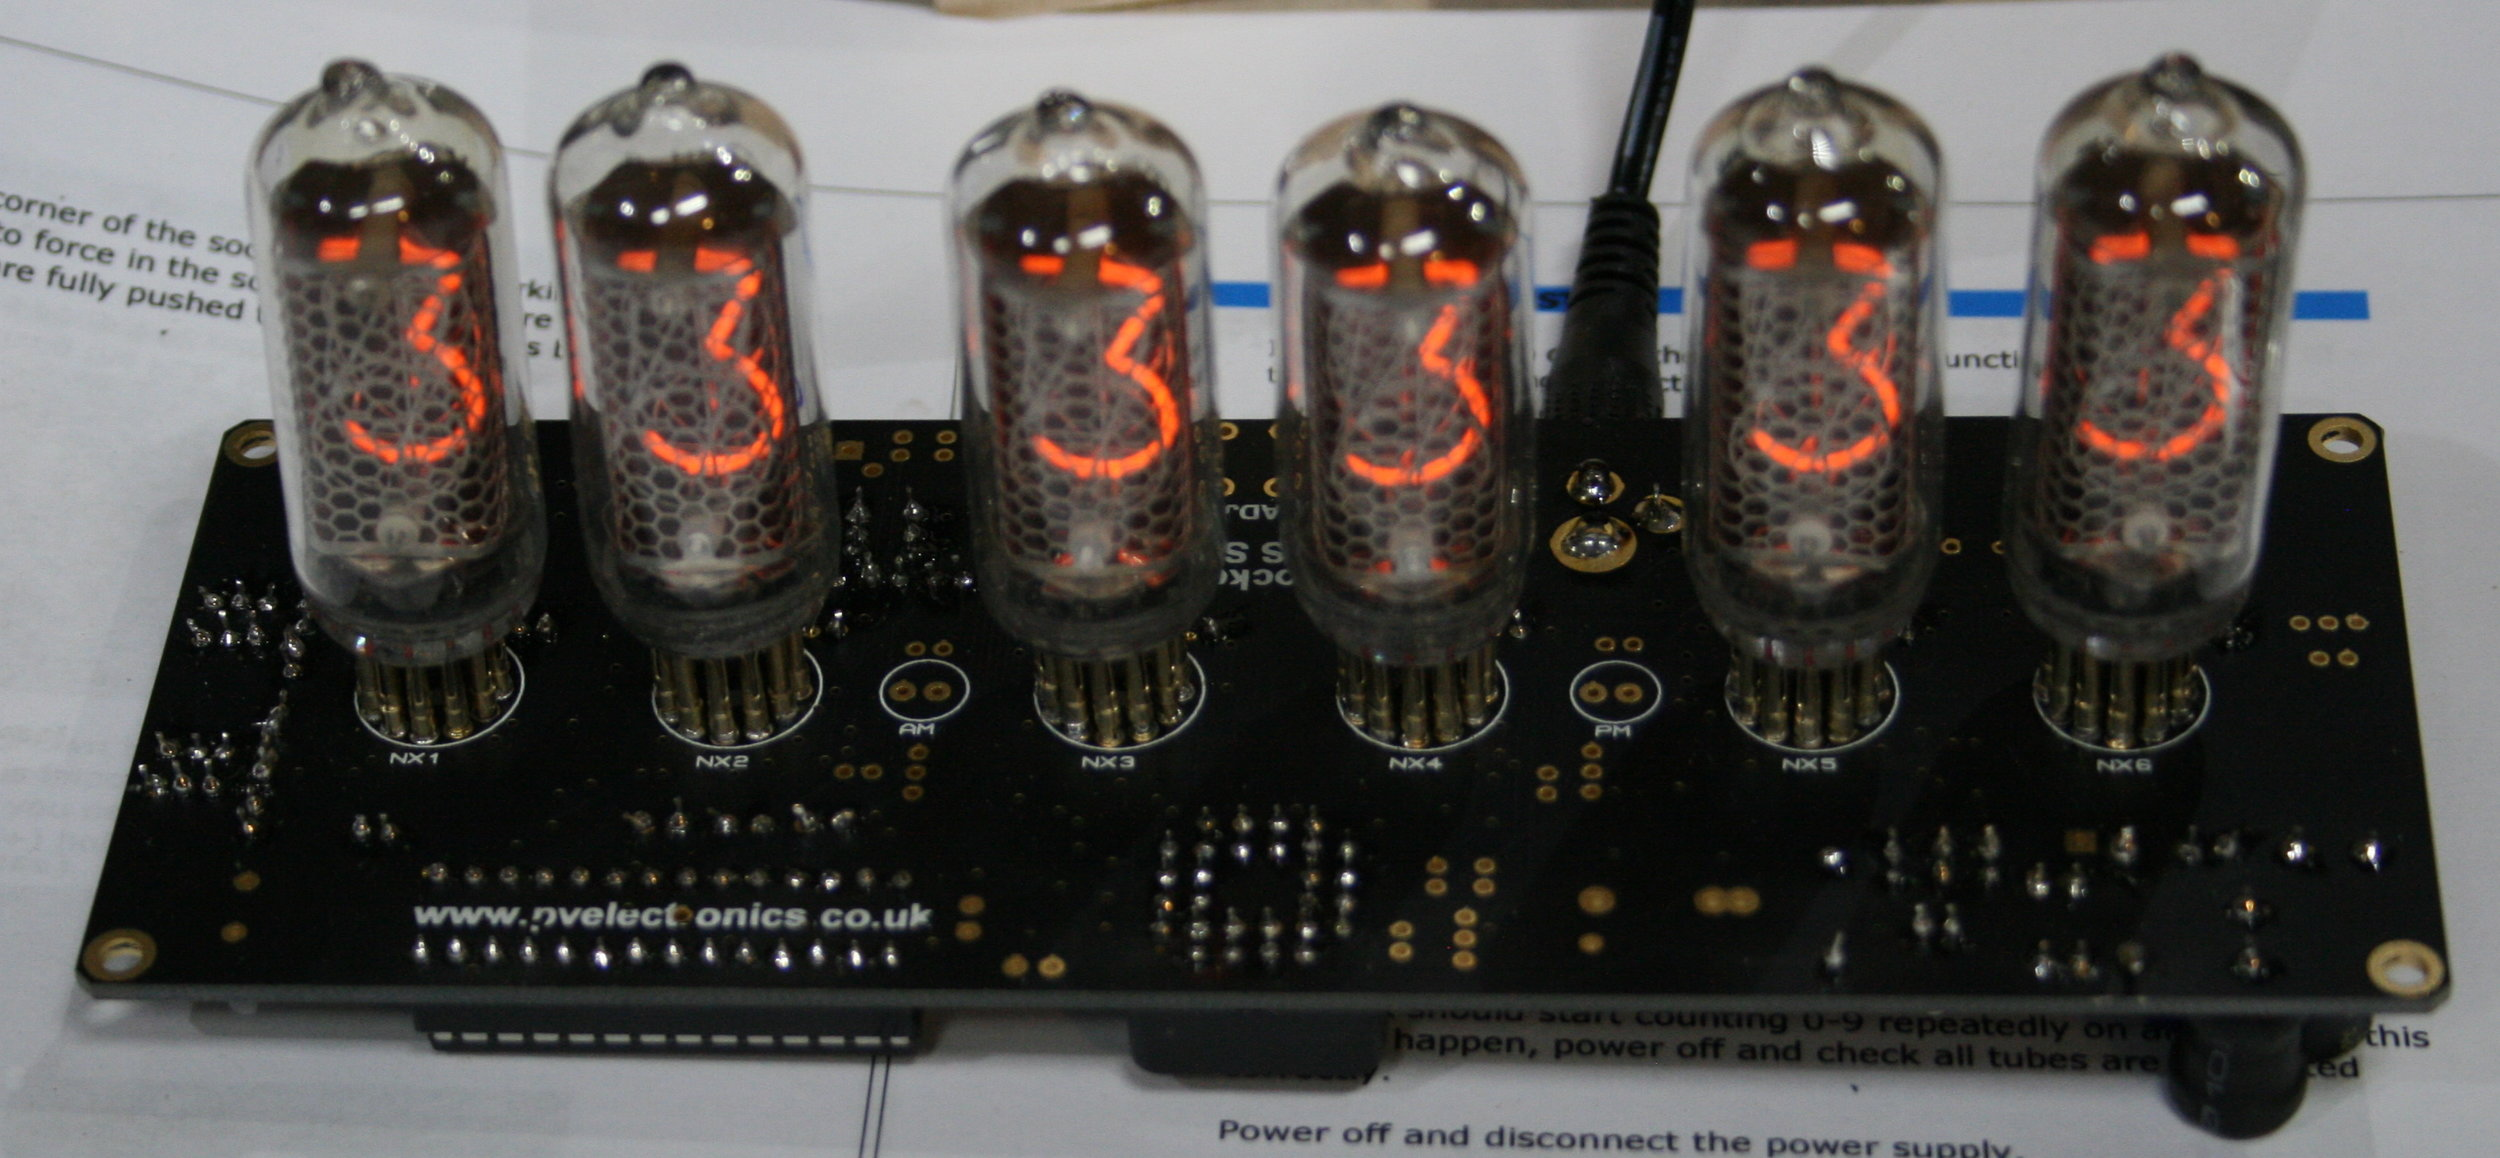 My partially-assembled circuit board with IN-8 tubes